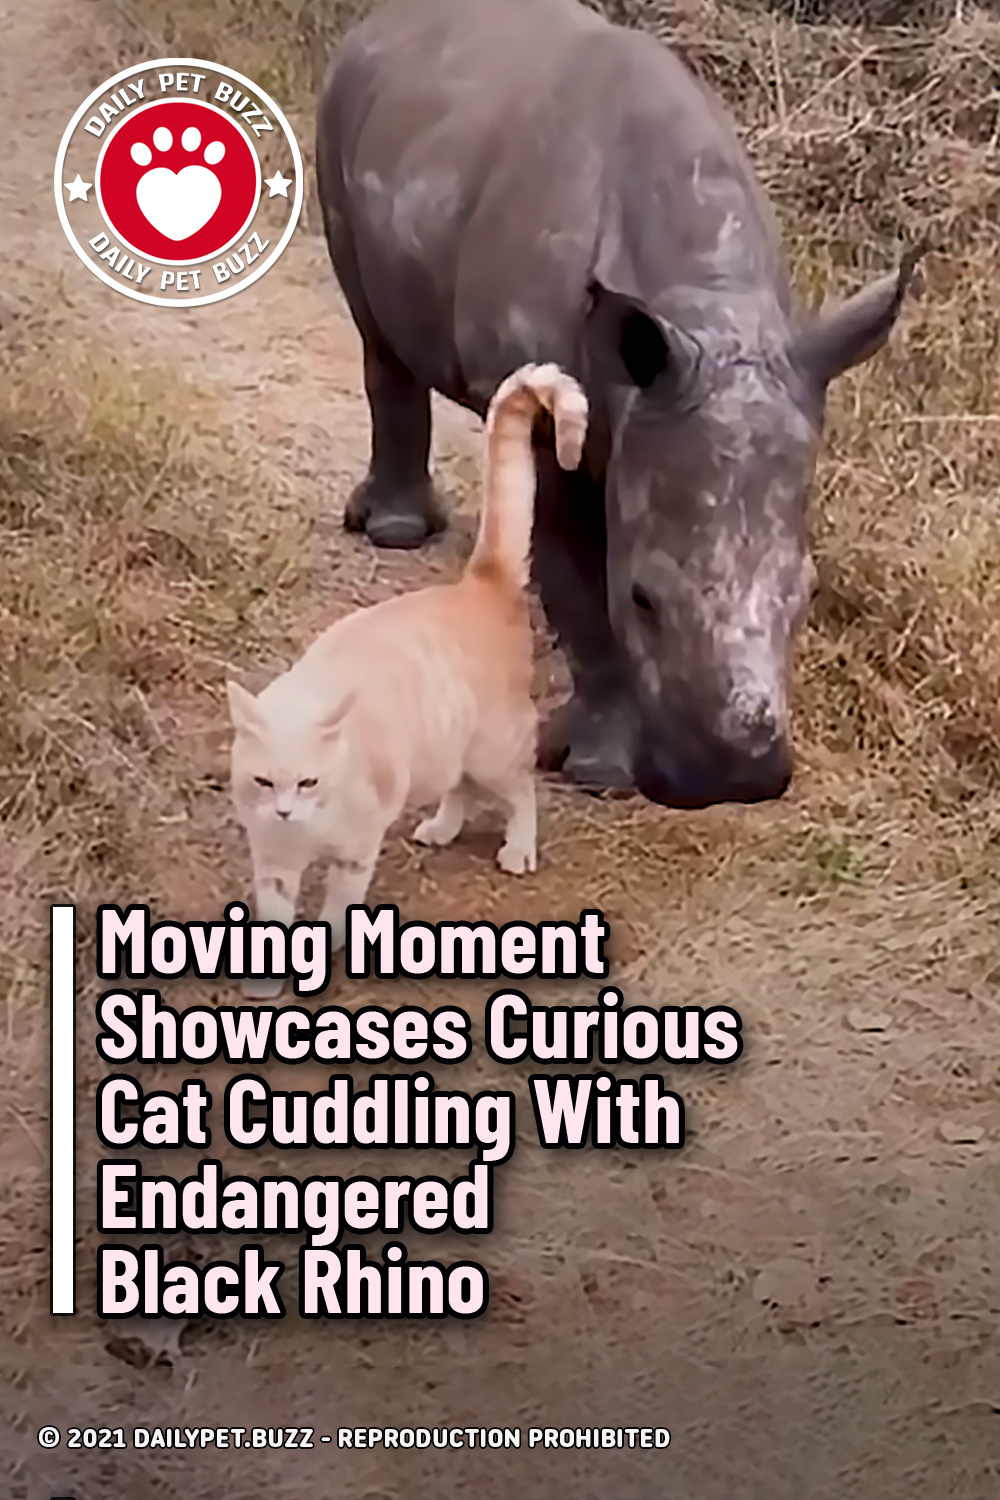 Moving Moment Showcases Curious Cat Cuddling With Endangered Black Rhino